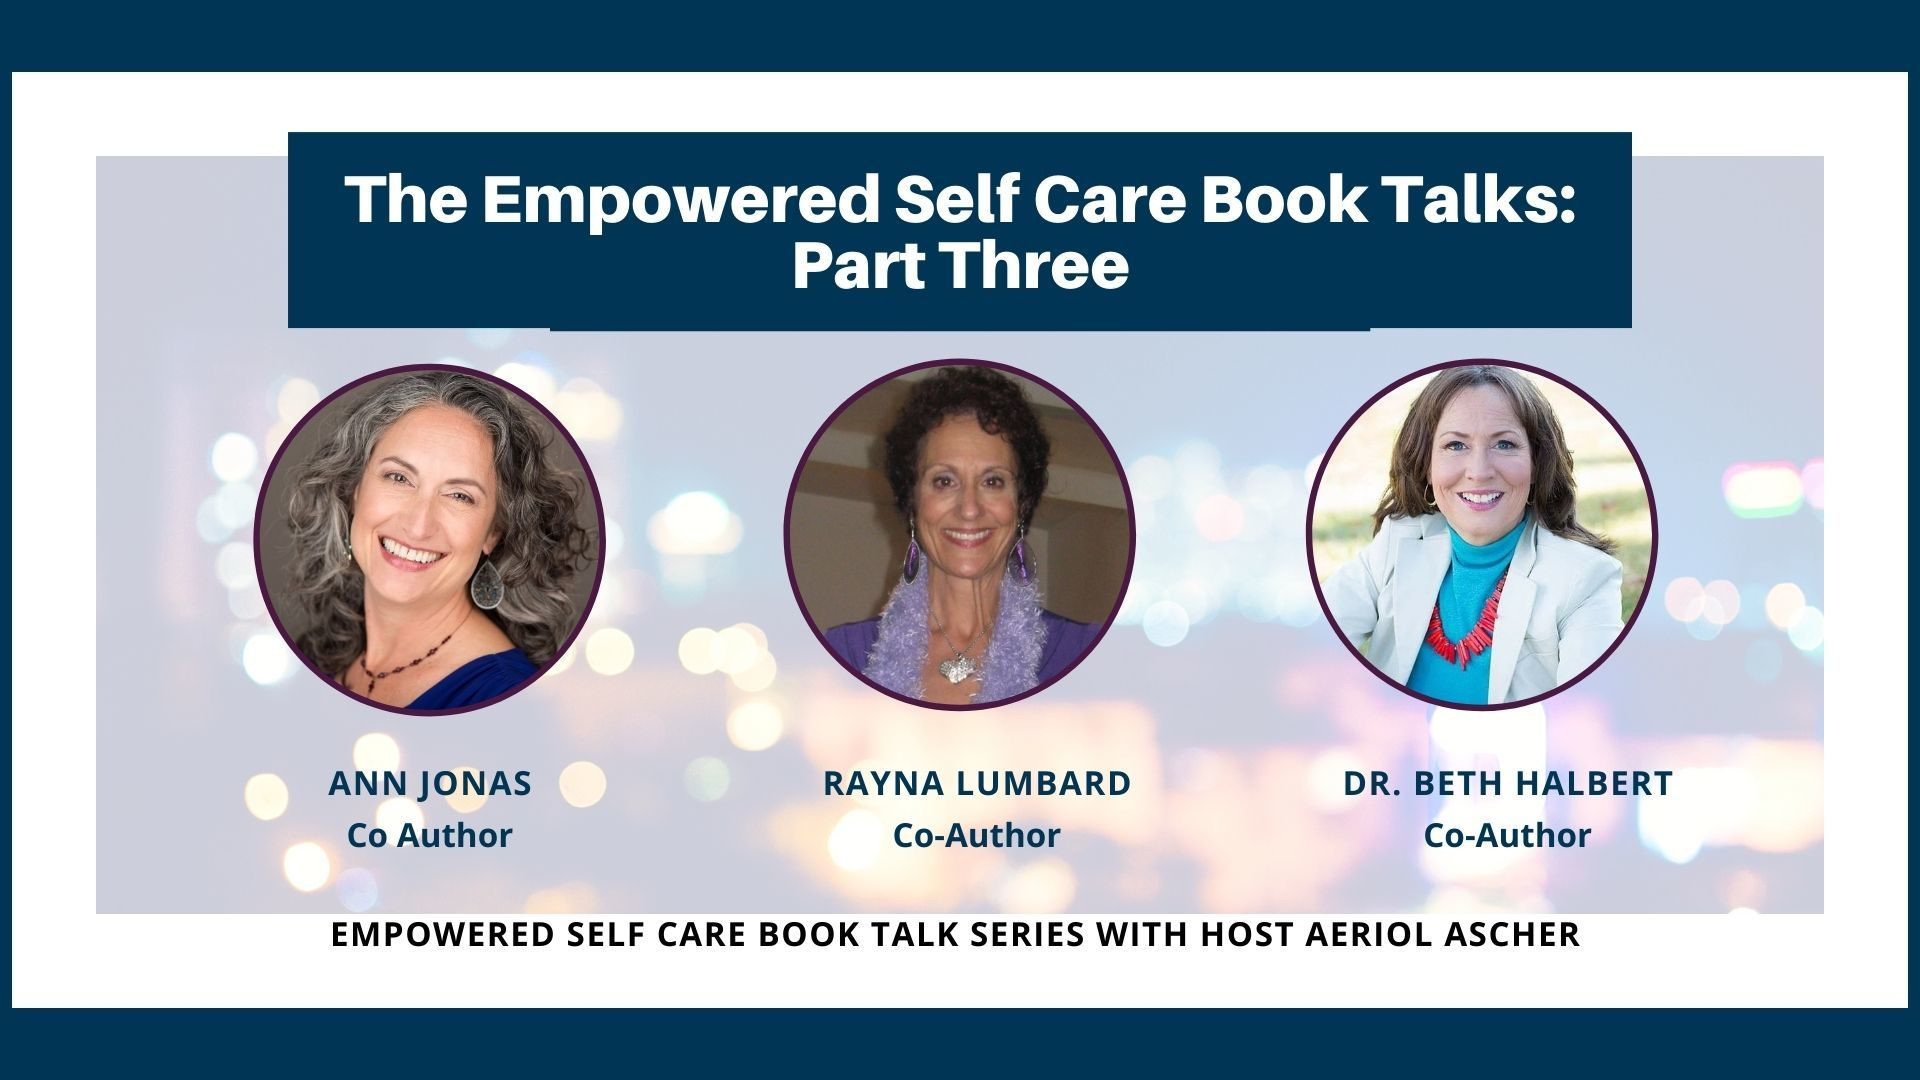 The Empowered Self Care Book Talk Series: Part 3